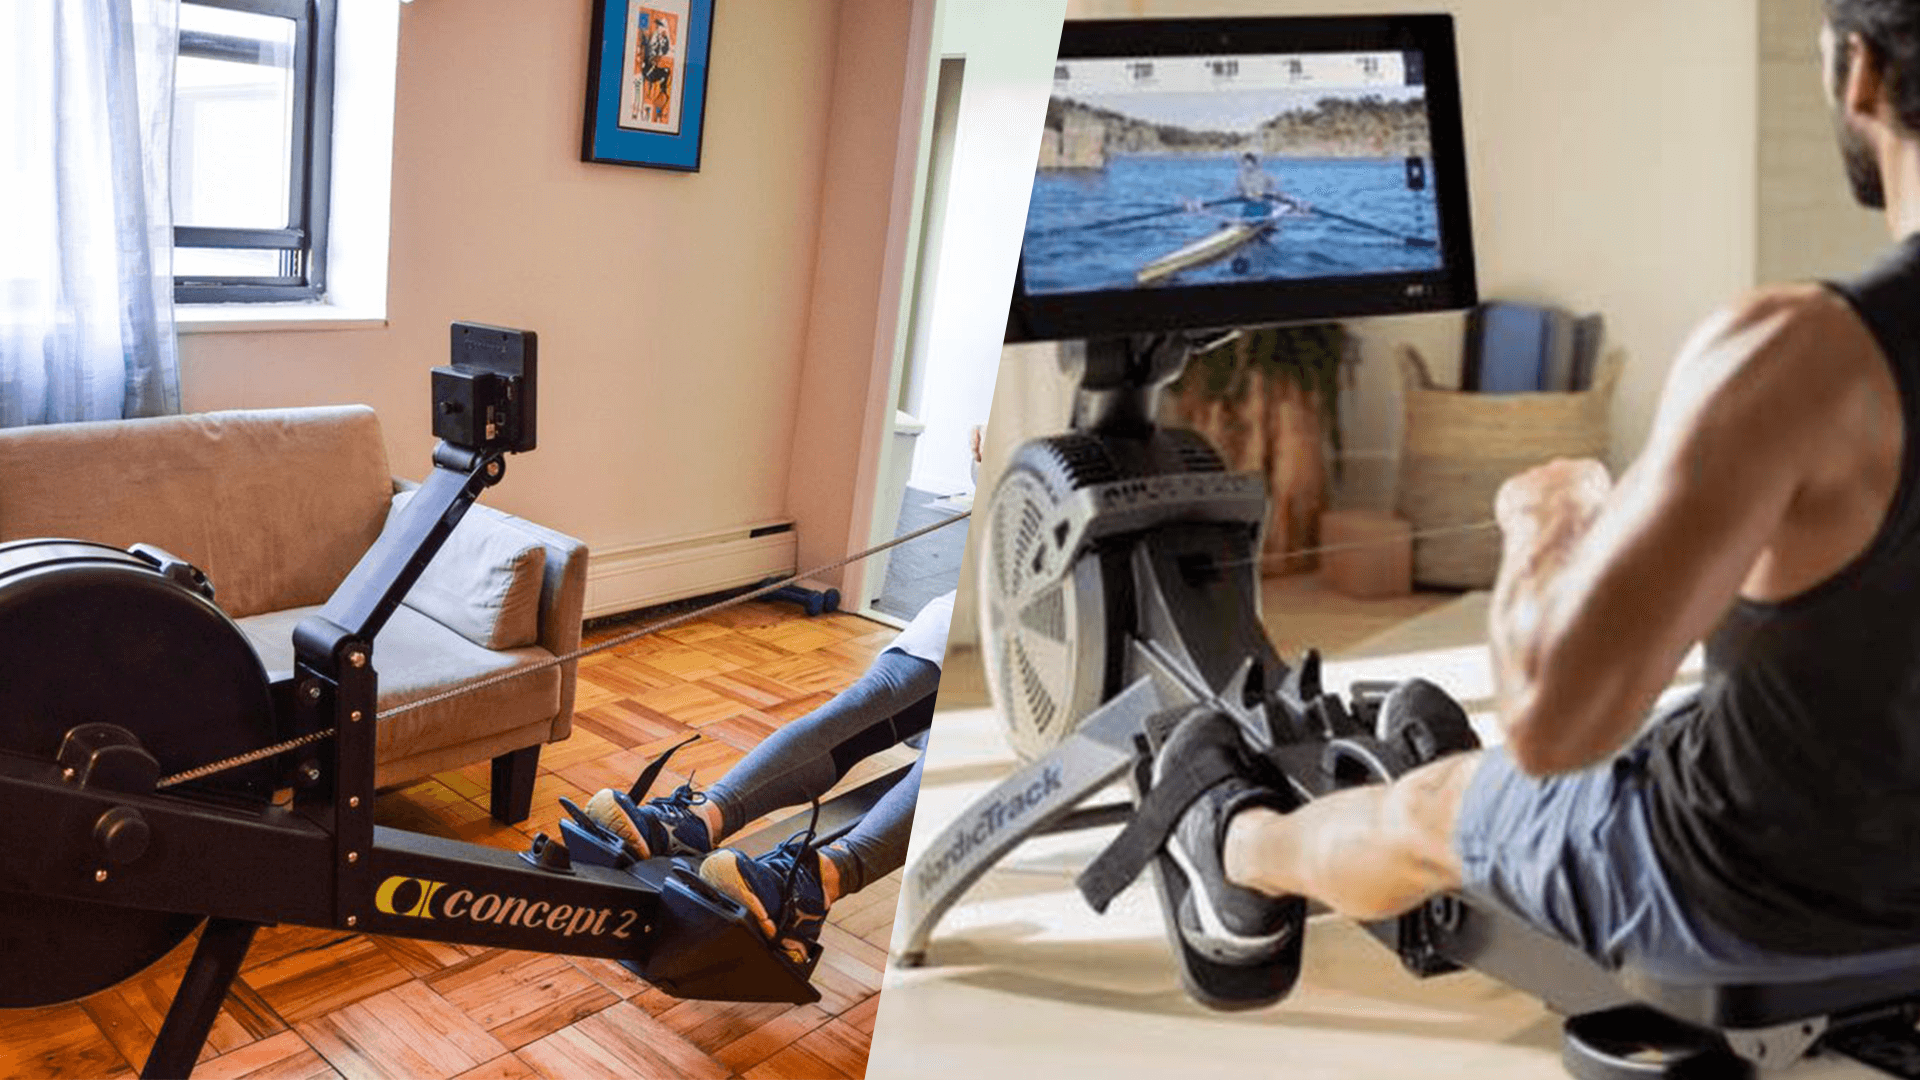 Comparing the NordicTrack RW900 and the Concept 2 Model D in terms of which one offers more features